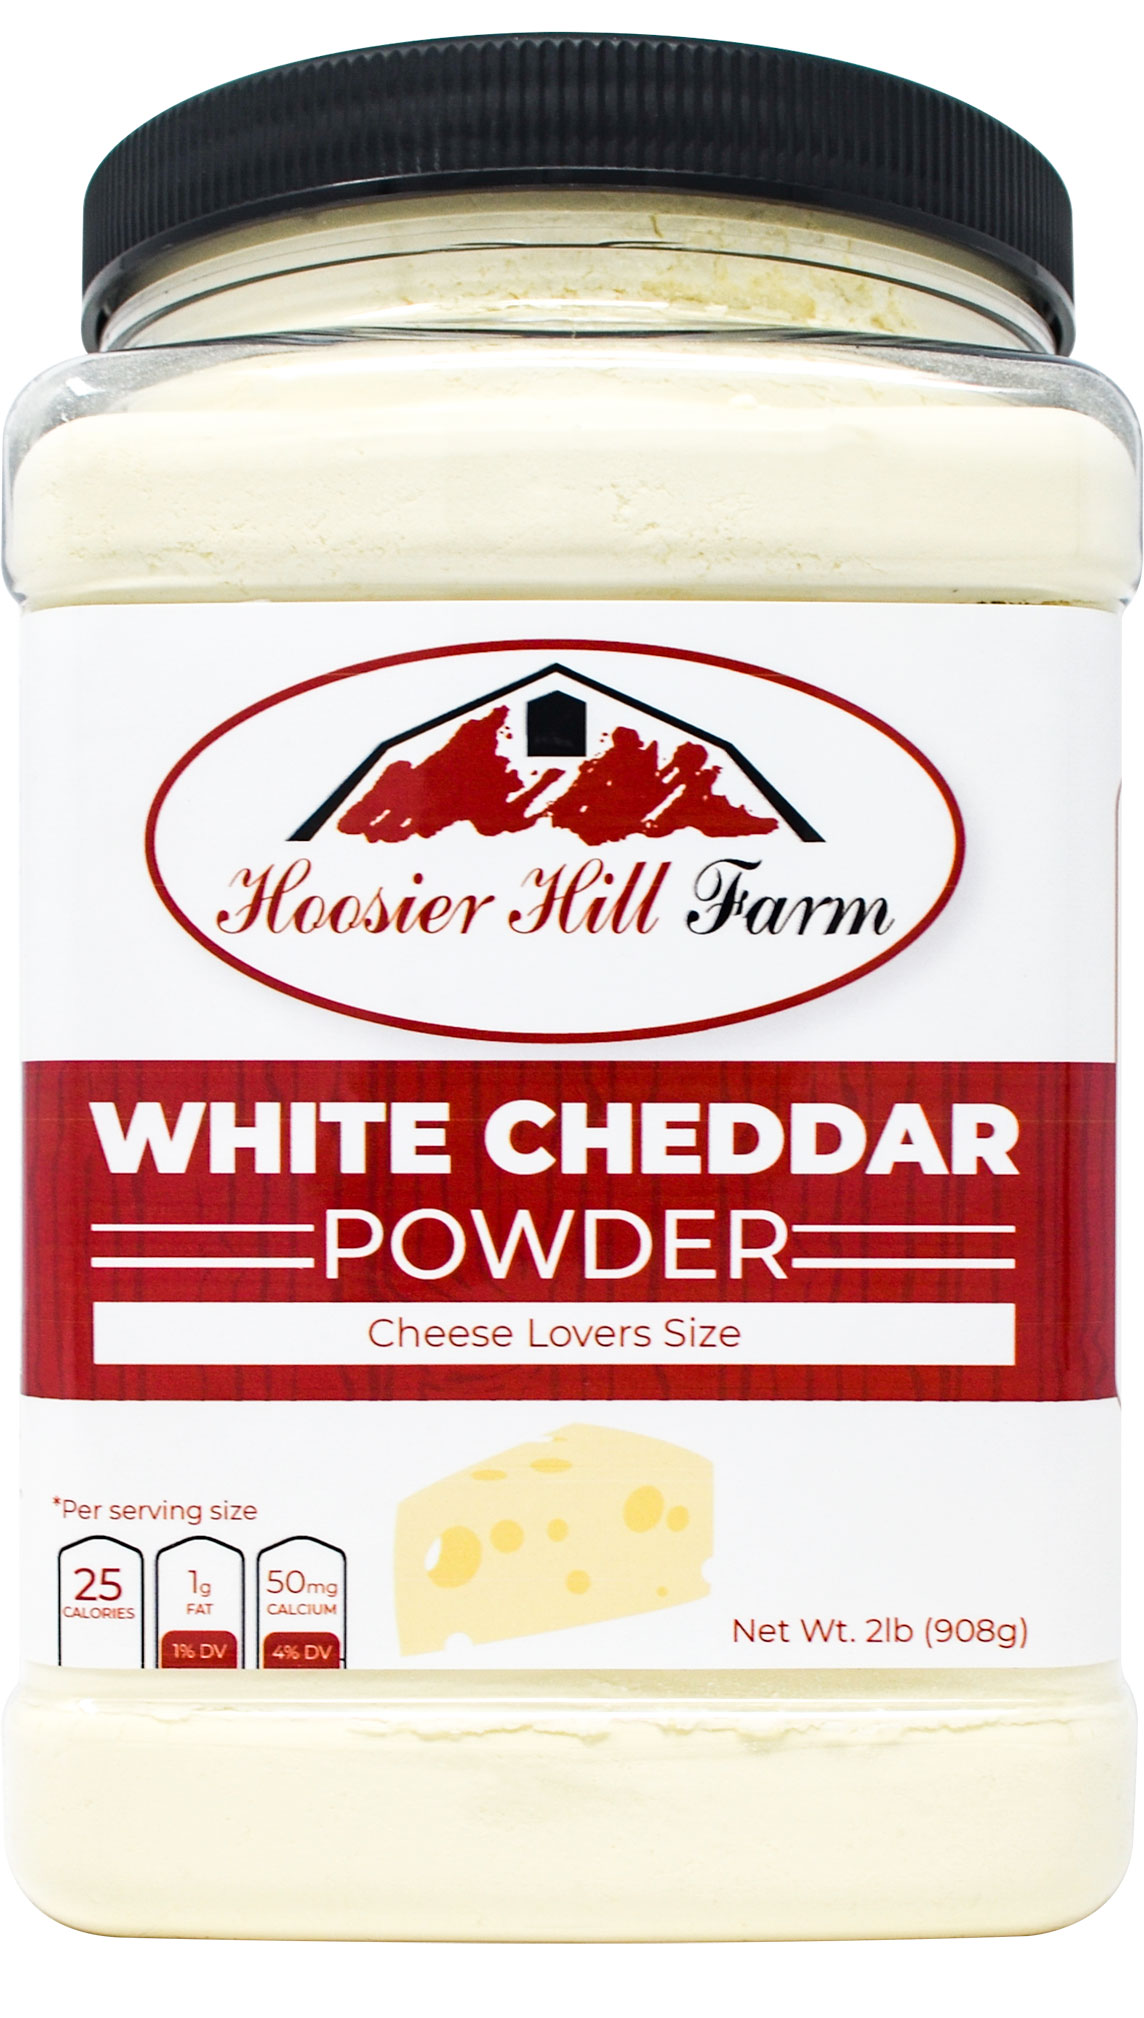 Hoosier Hill Farm White Cheddar Cheese Powder, cheese lovers 2 lb size